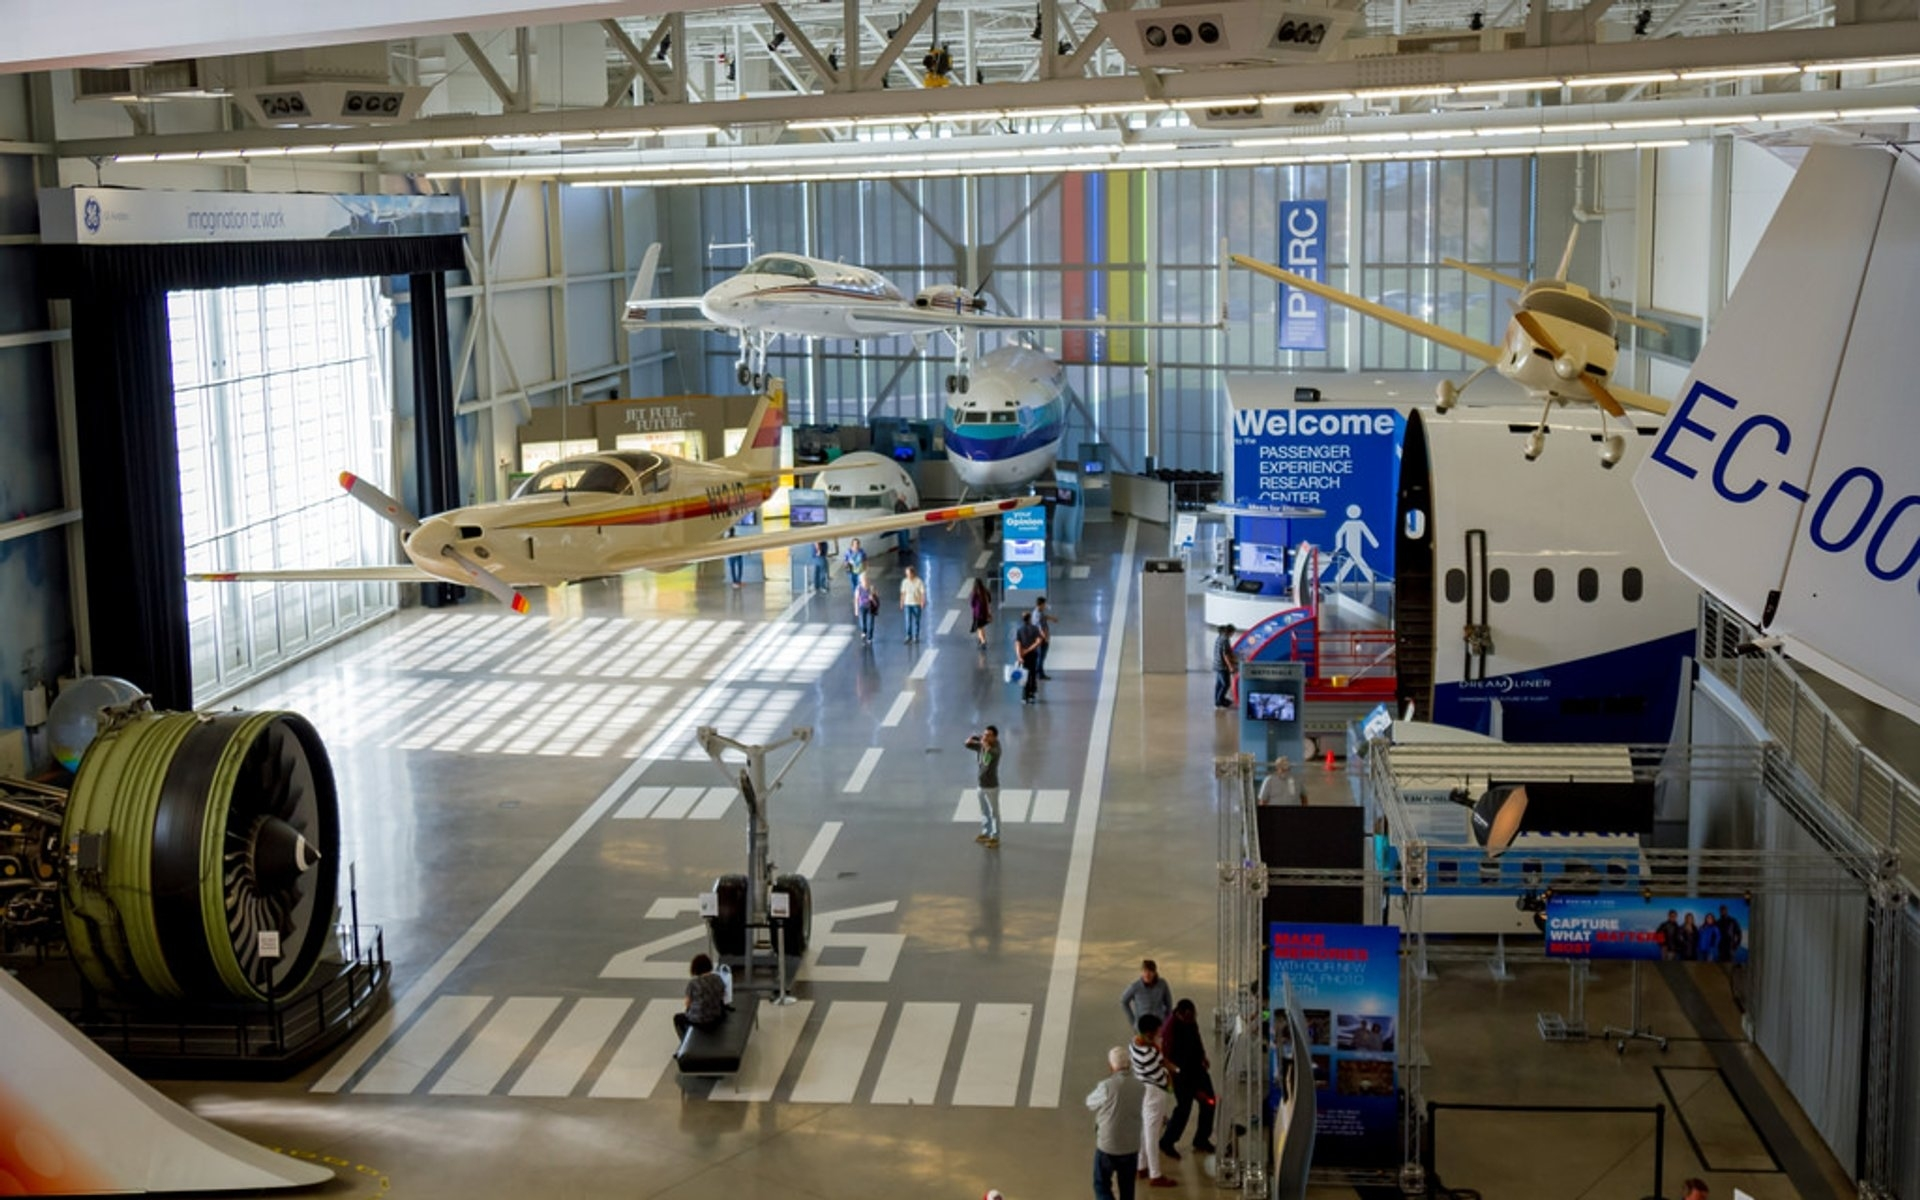 Best Time For Boeing Factory In Seattle 2019 - Best Season & Map with Boeing Factory Tour Map